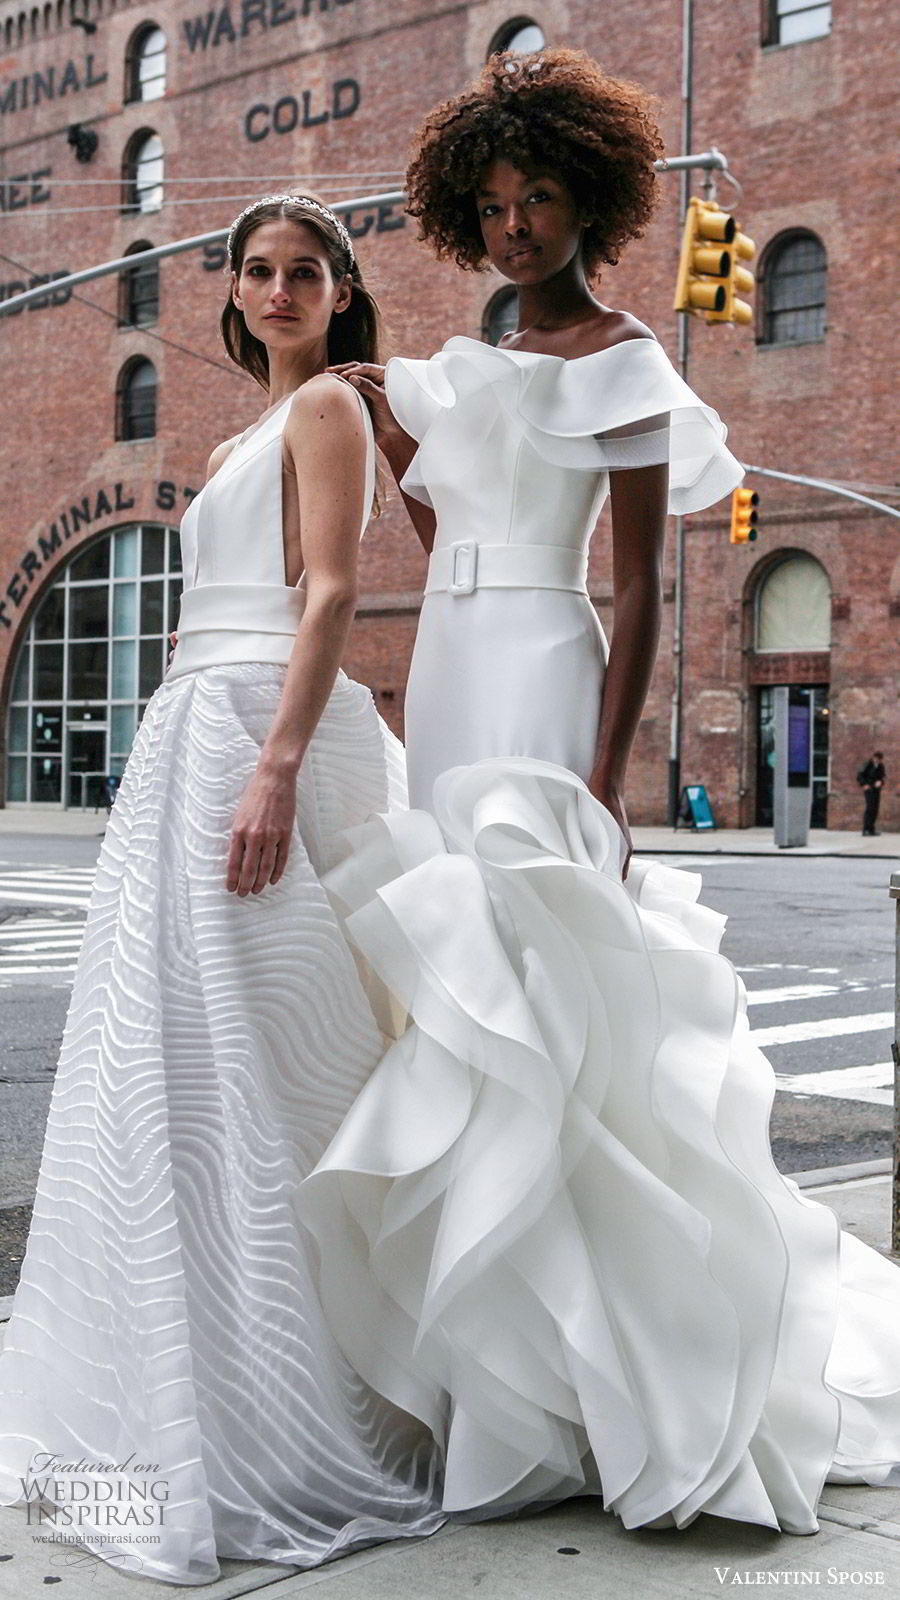 valentini spose spring 2020 bridal sleeveless off shoulder ball gown mermaid wedding dress (20) modern chic mv